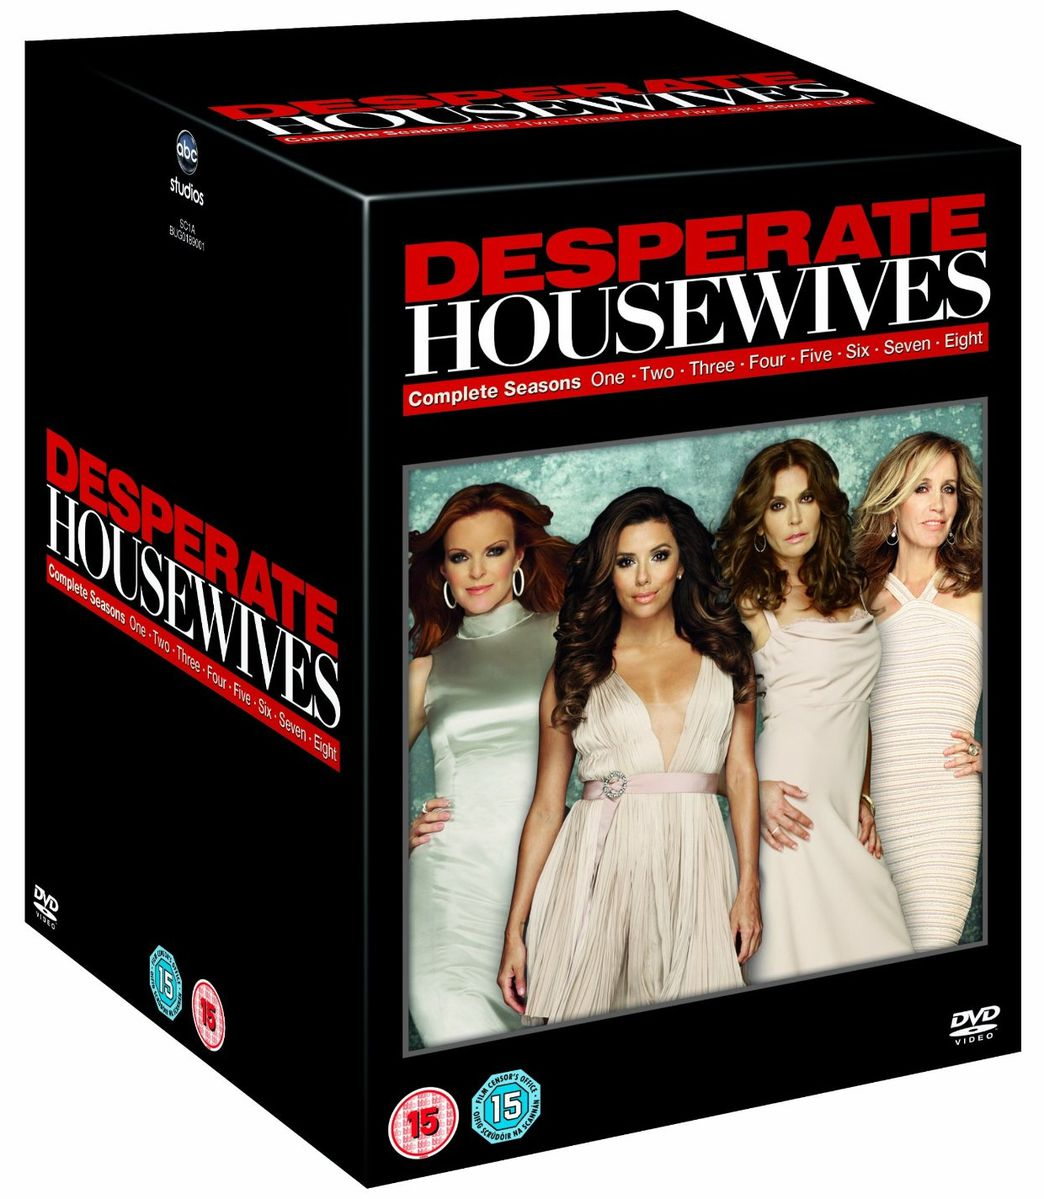 coffret dvd desperate housewives hairy woman ass. Black Bedroom Furniture Sets. Home Design Ideas